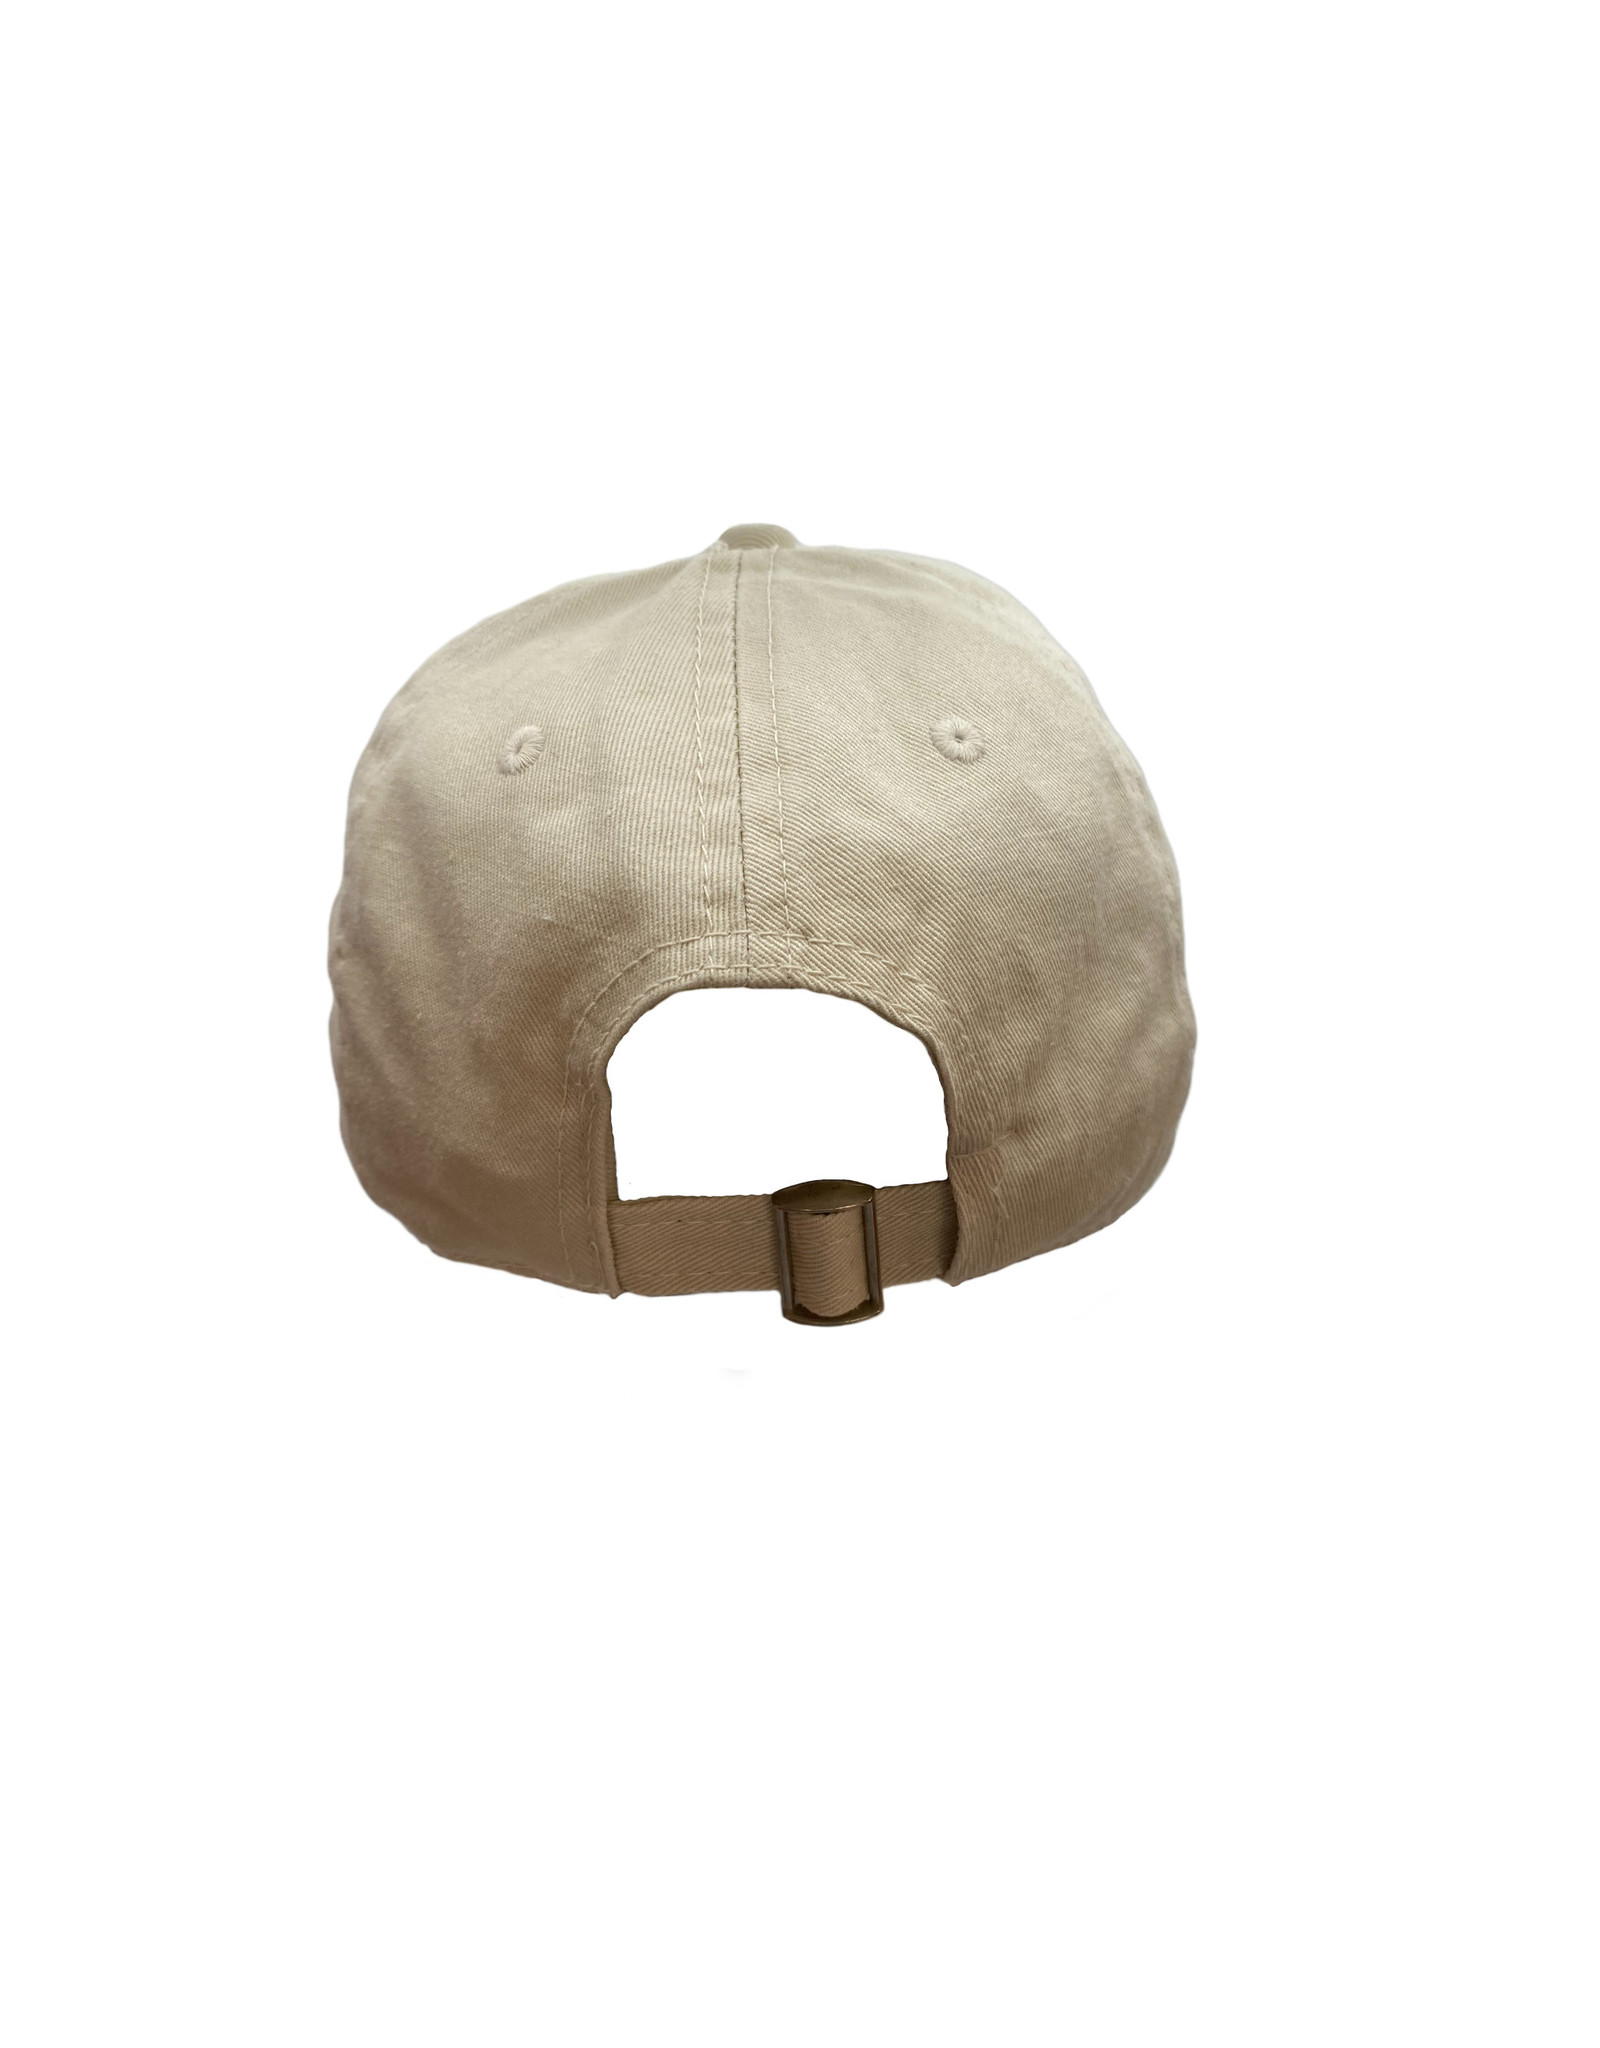 REHOBOTH LIFESTYLE CLASSIC COTTON BEACH HAT ADJUSTABLE OS IVORY RB